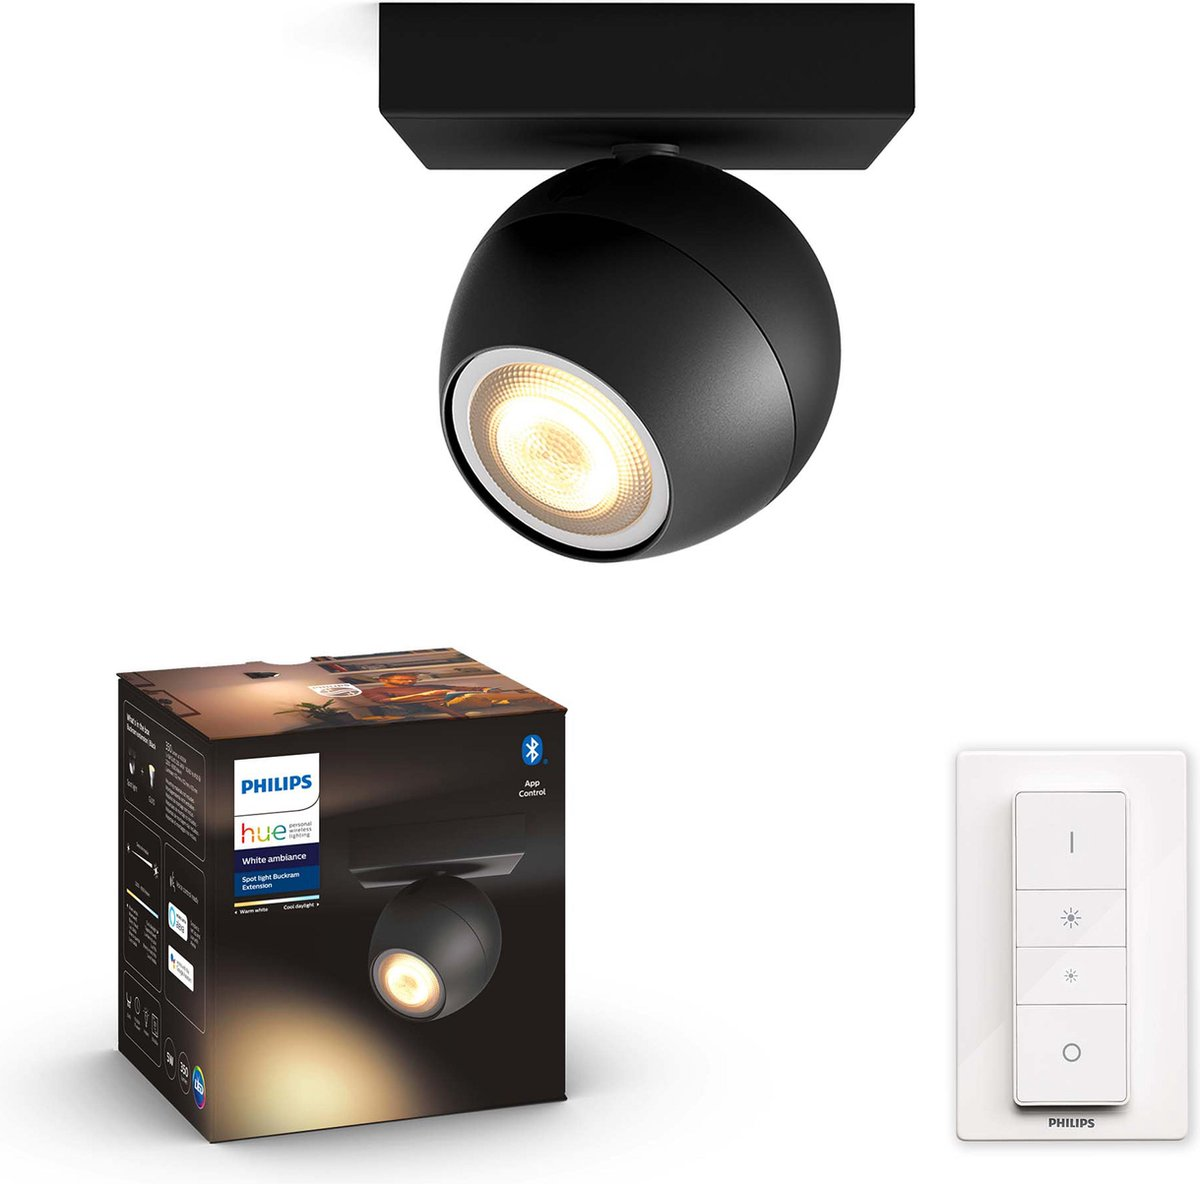 Philips Hue - BUCKRAM single spot black 1x5.5W 230V - White Ambiance - Bluetooth Dimmer Included